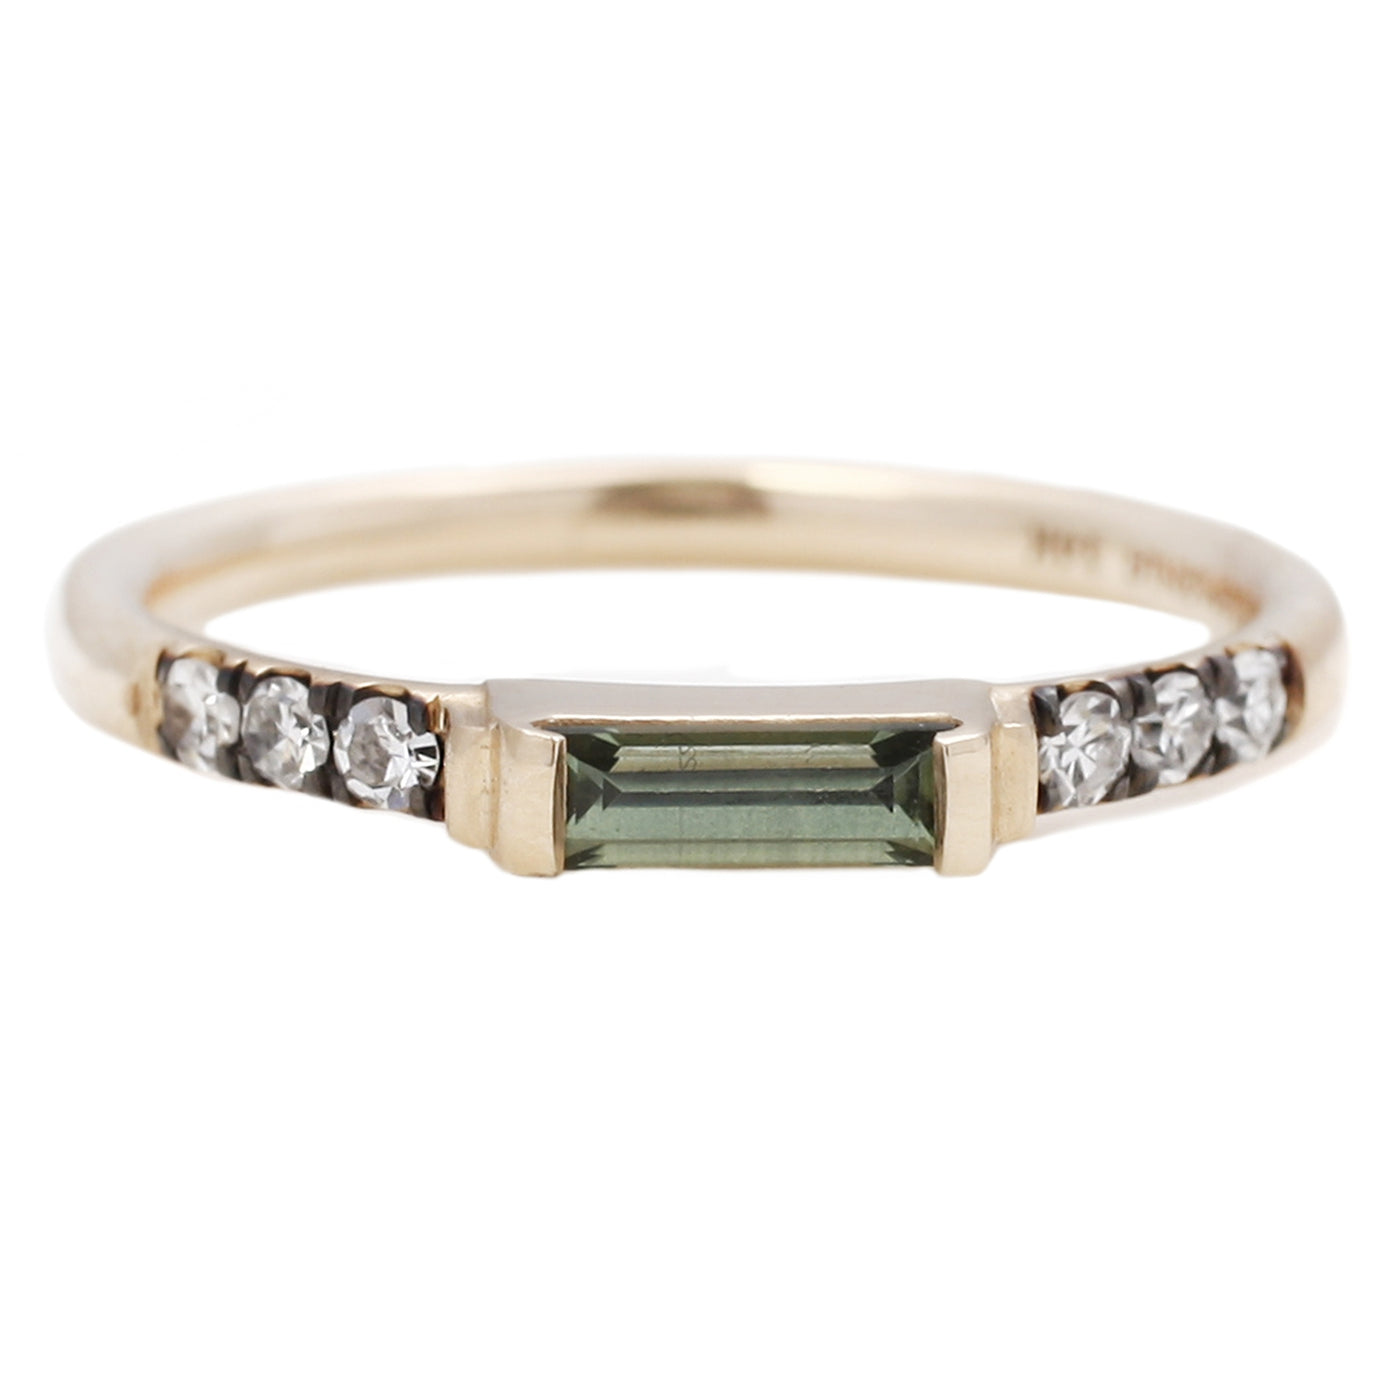 ManiaMania Green Sapphire Illumination Ring